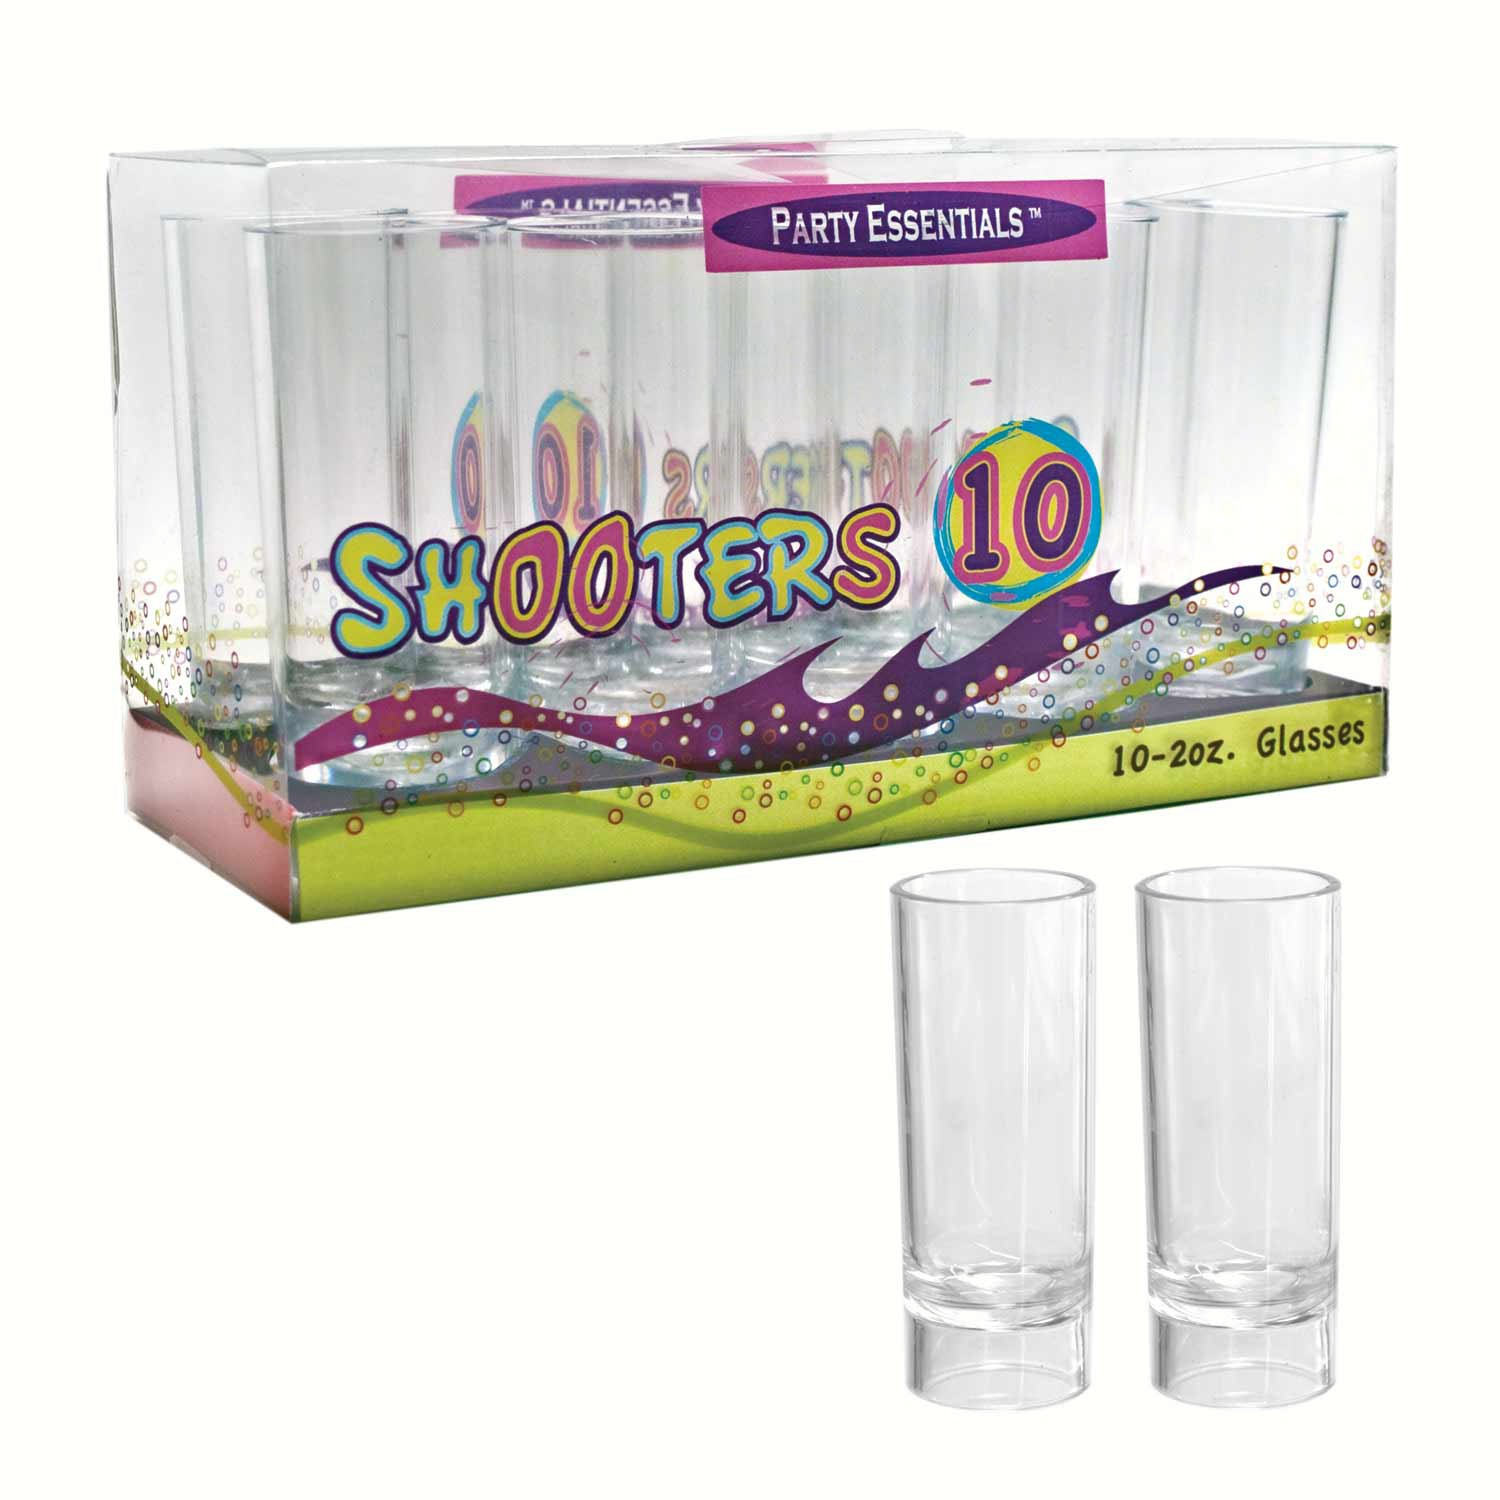 2 oz Shooter Glasses Clear 10 ct boxes